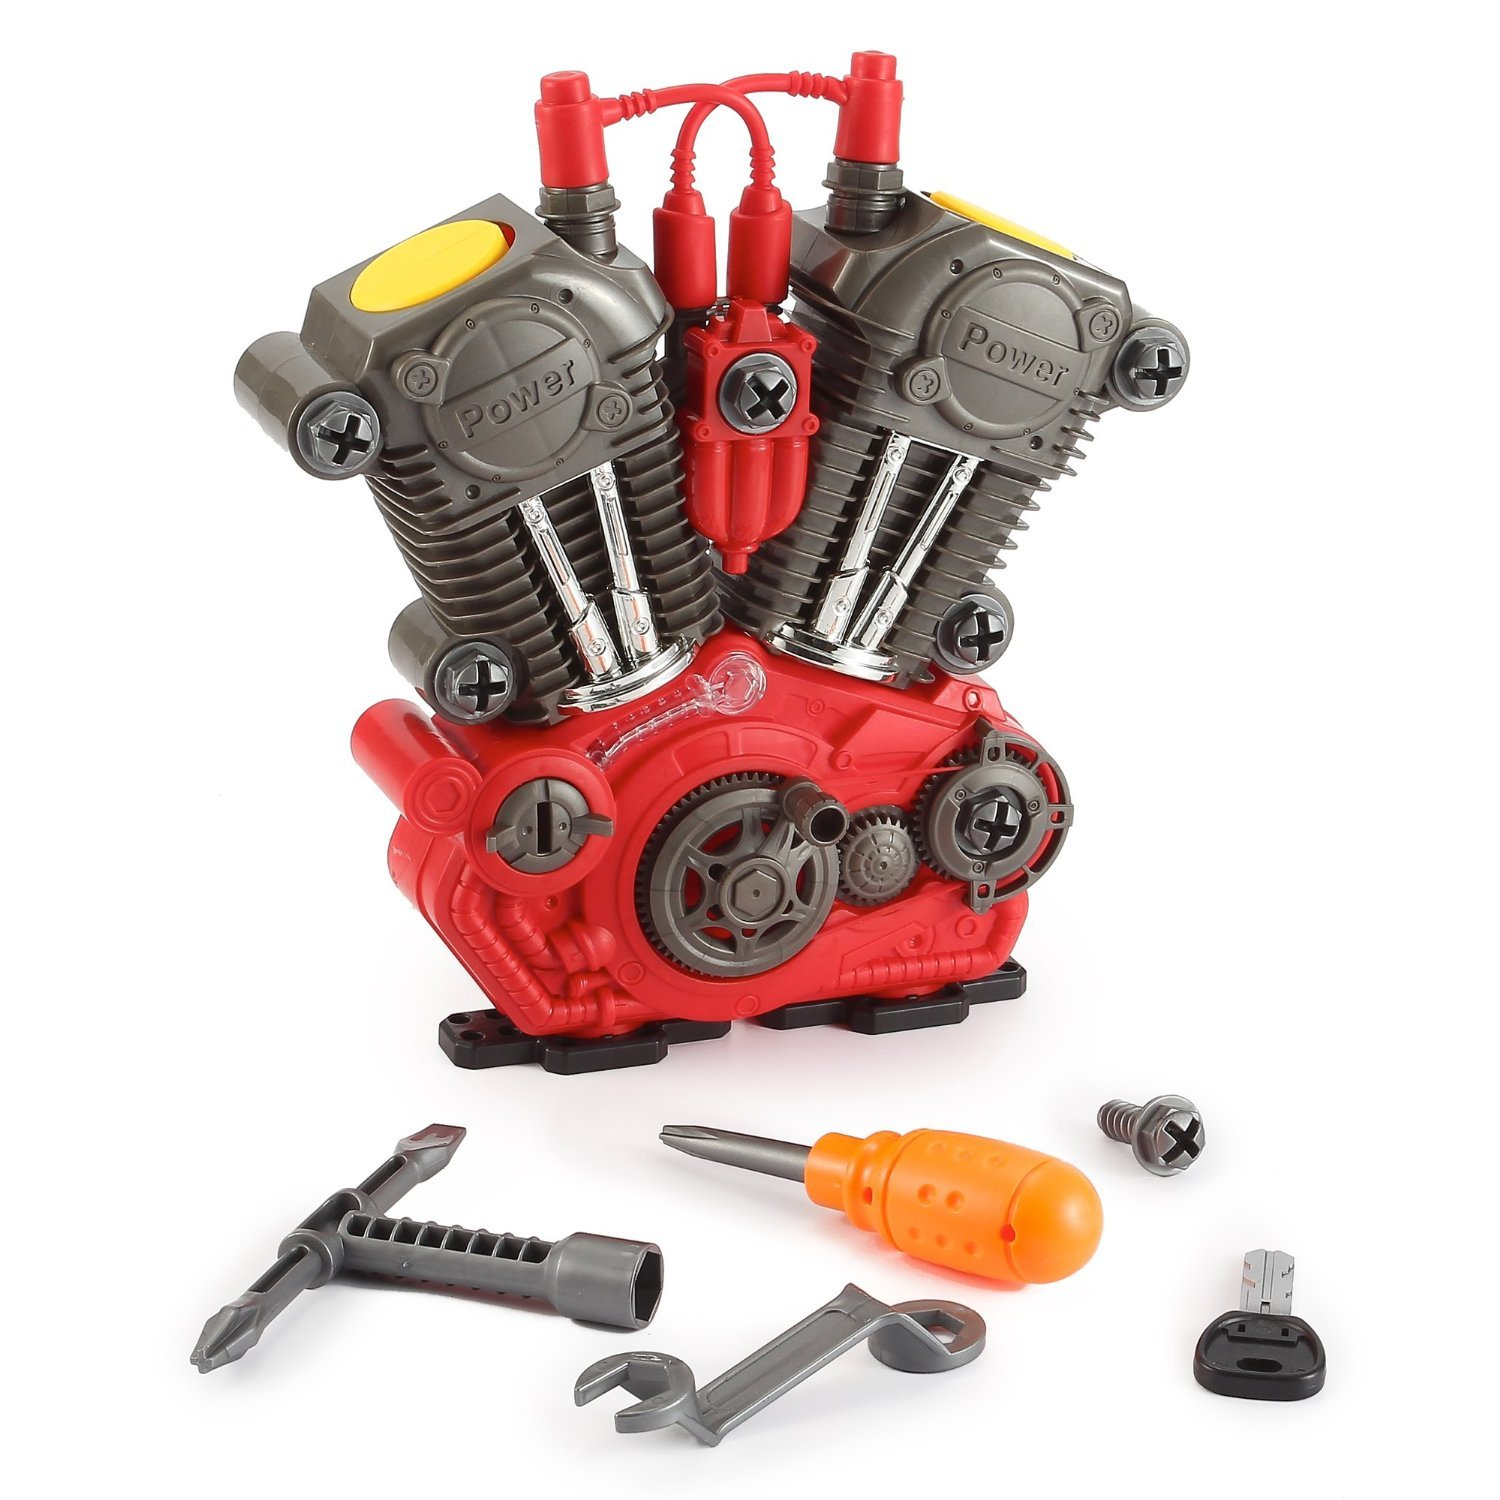 amazoncom build your own engine overhaul toy set for kids 20 pieces take apart kit by powertrc toys games